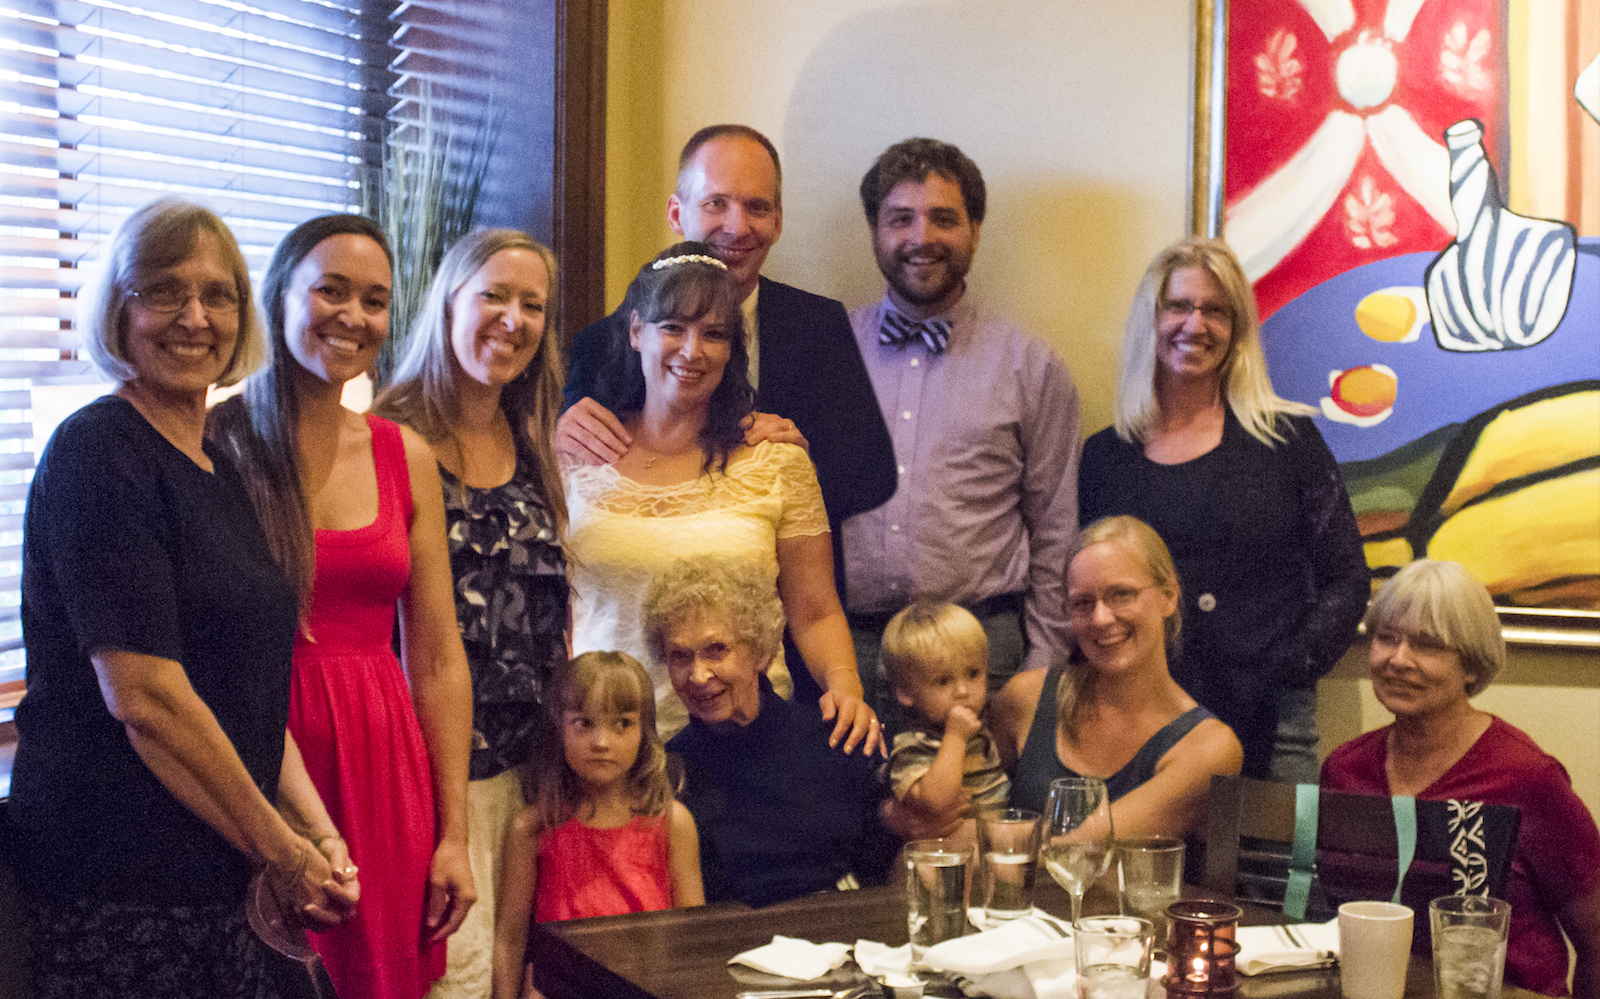 Greg and Lucie Dils host a wedding reception in Minnesota